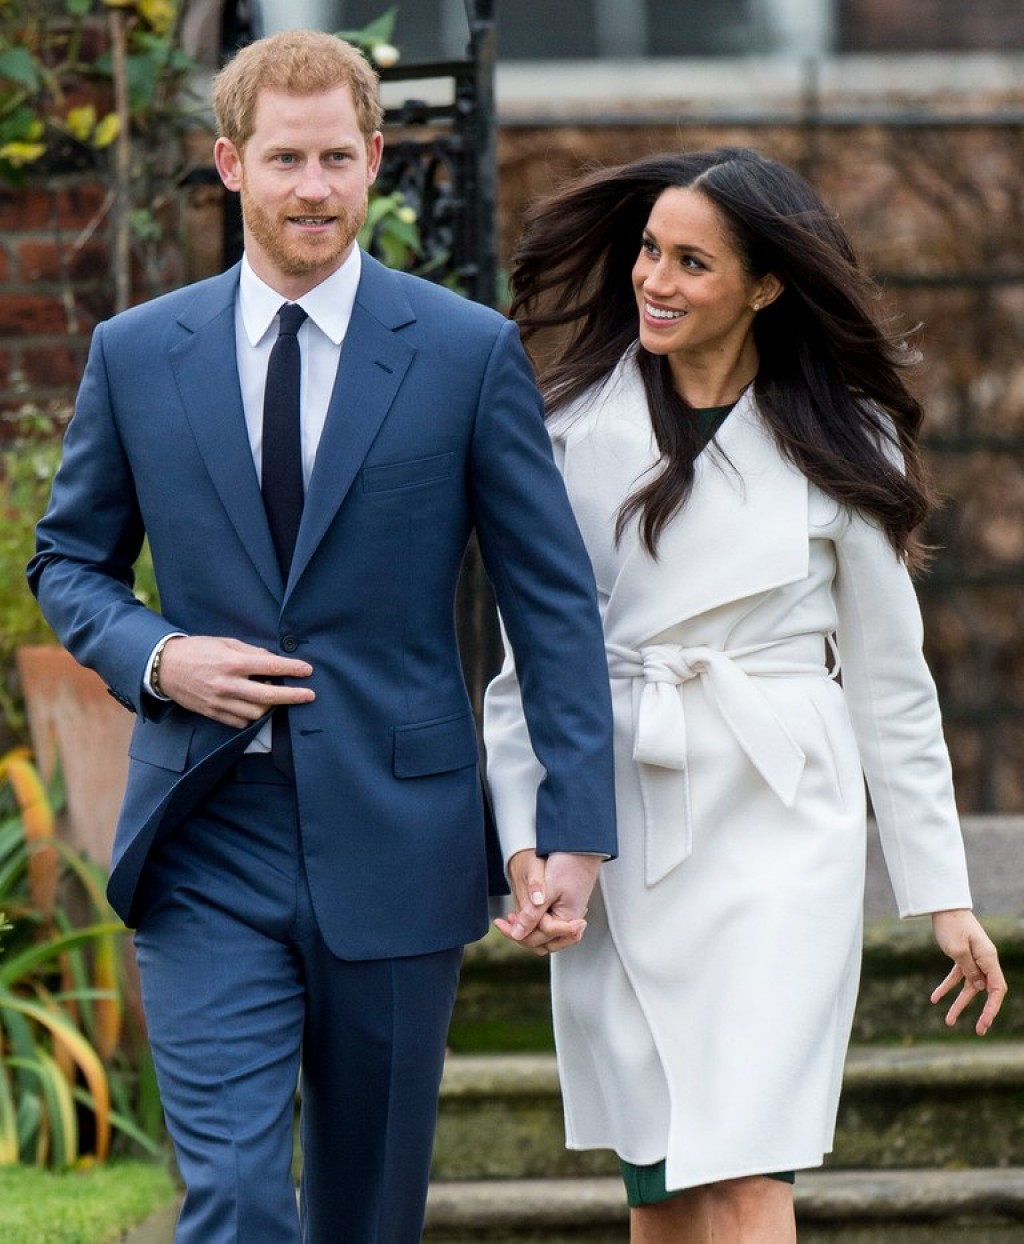 6 Things Prince Harry And Meghan Markle Won't Be Able To